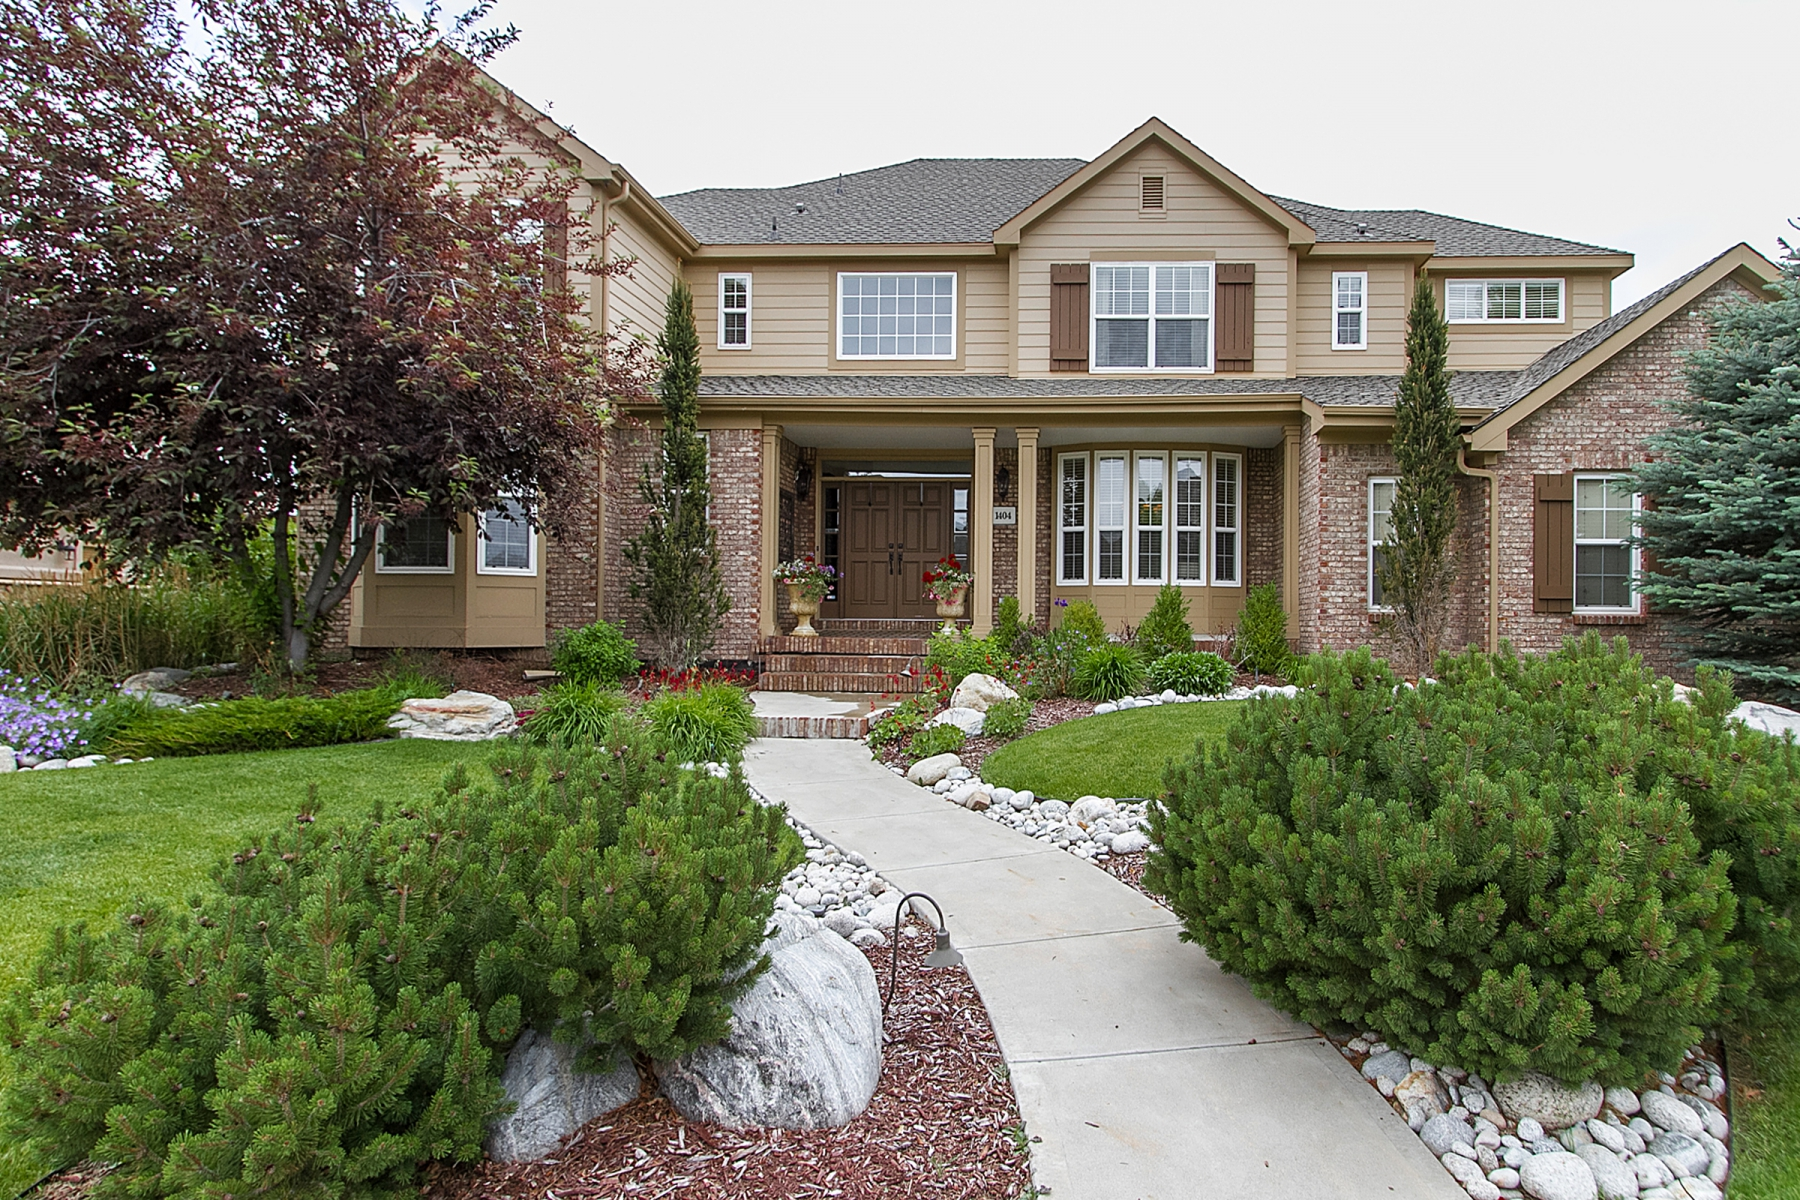 Single Family Home for Sale at Located backing to open space and trails. 1404 Brettonwood Way Highlands Ranch, Colorado 80129 United States